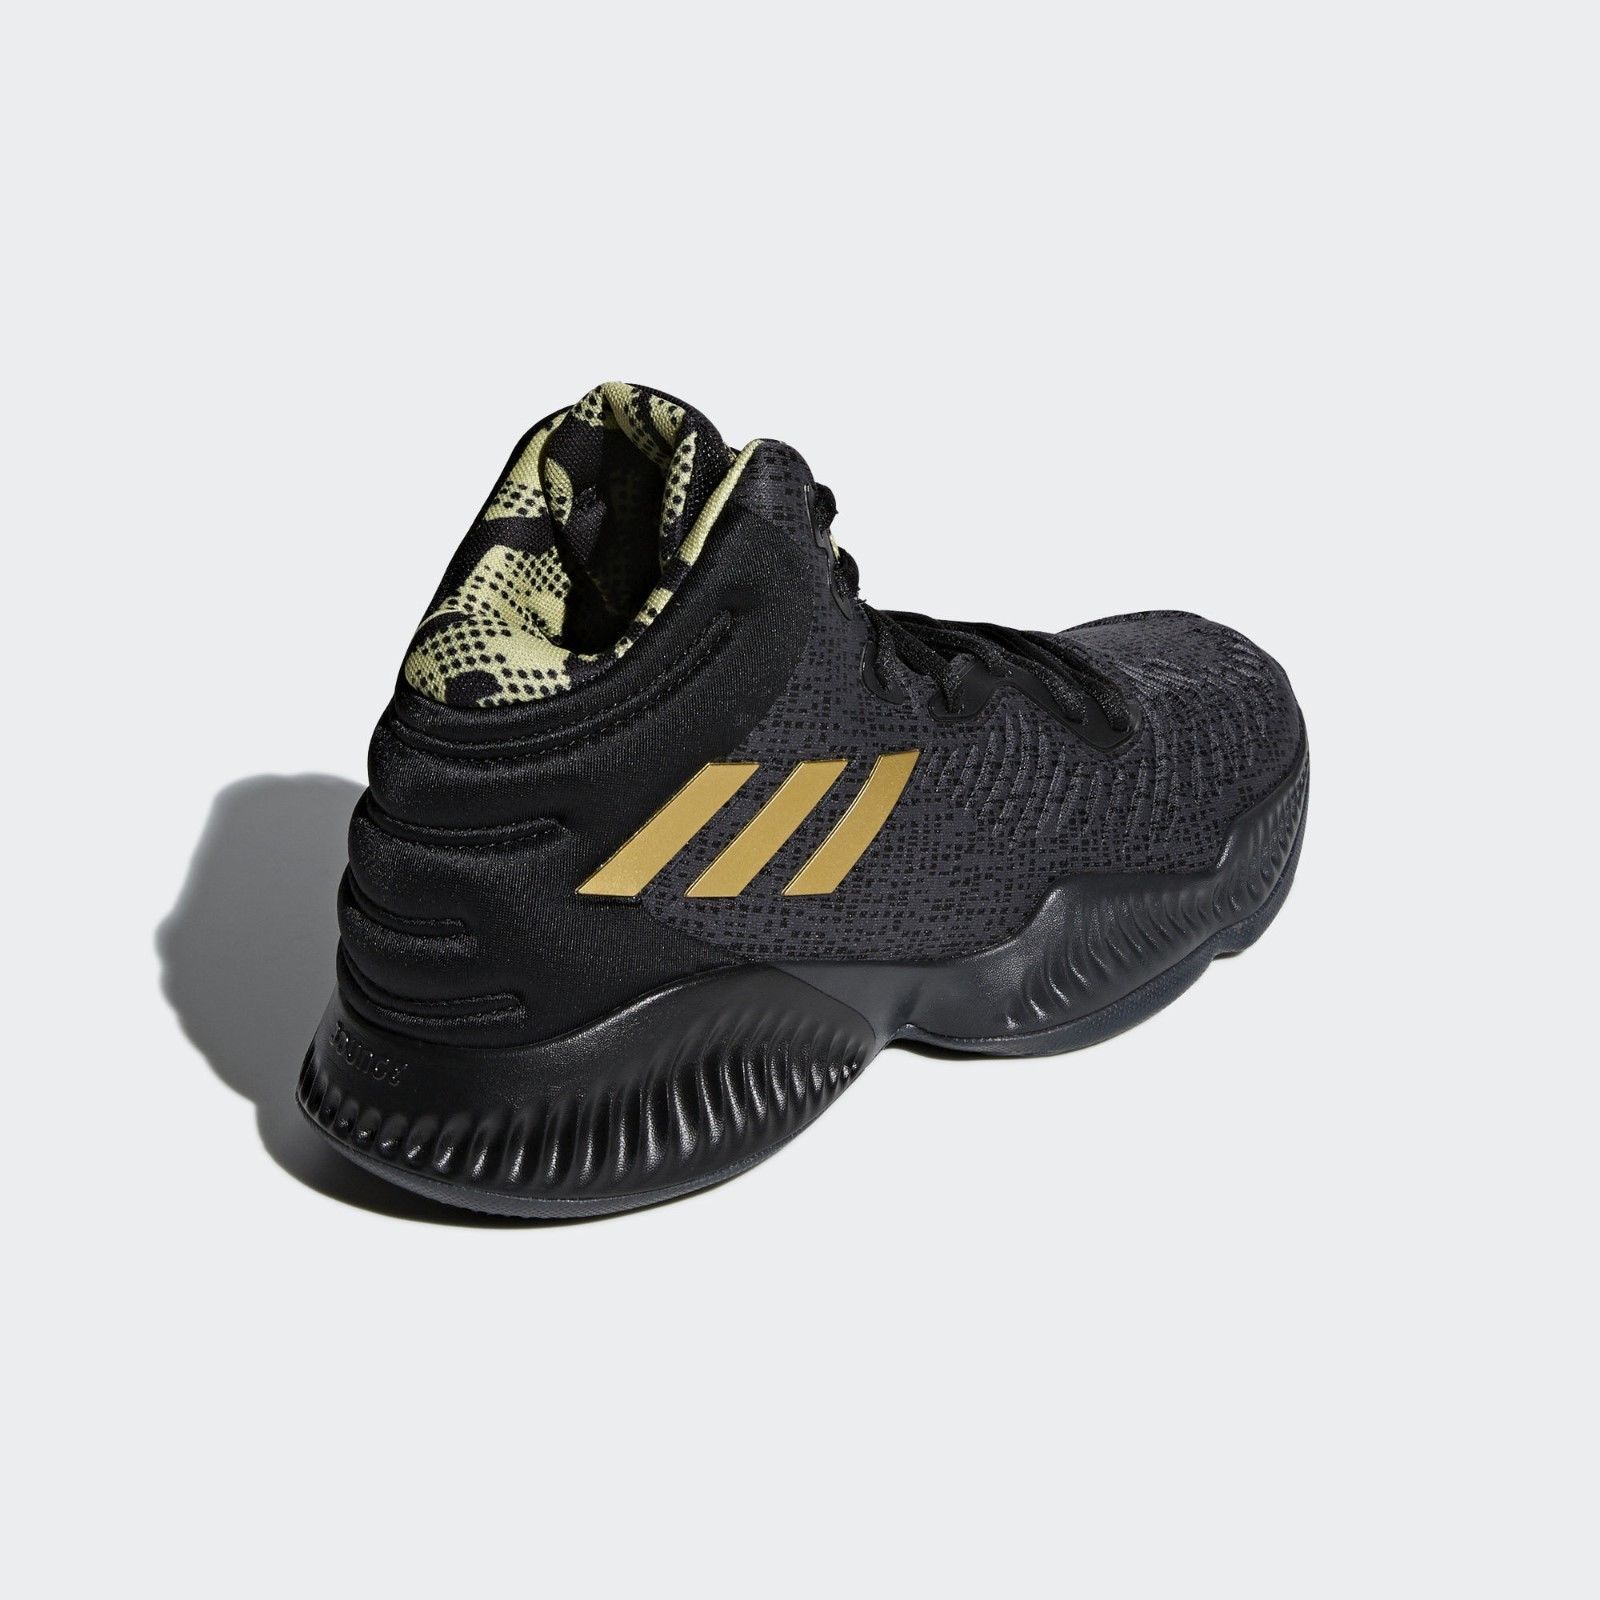 4fe8b4eaab85 Adidas BasketBall Men s Mad Bounce 2018 Shoes Size 7 to 16 us B41870